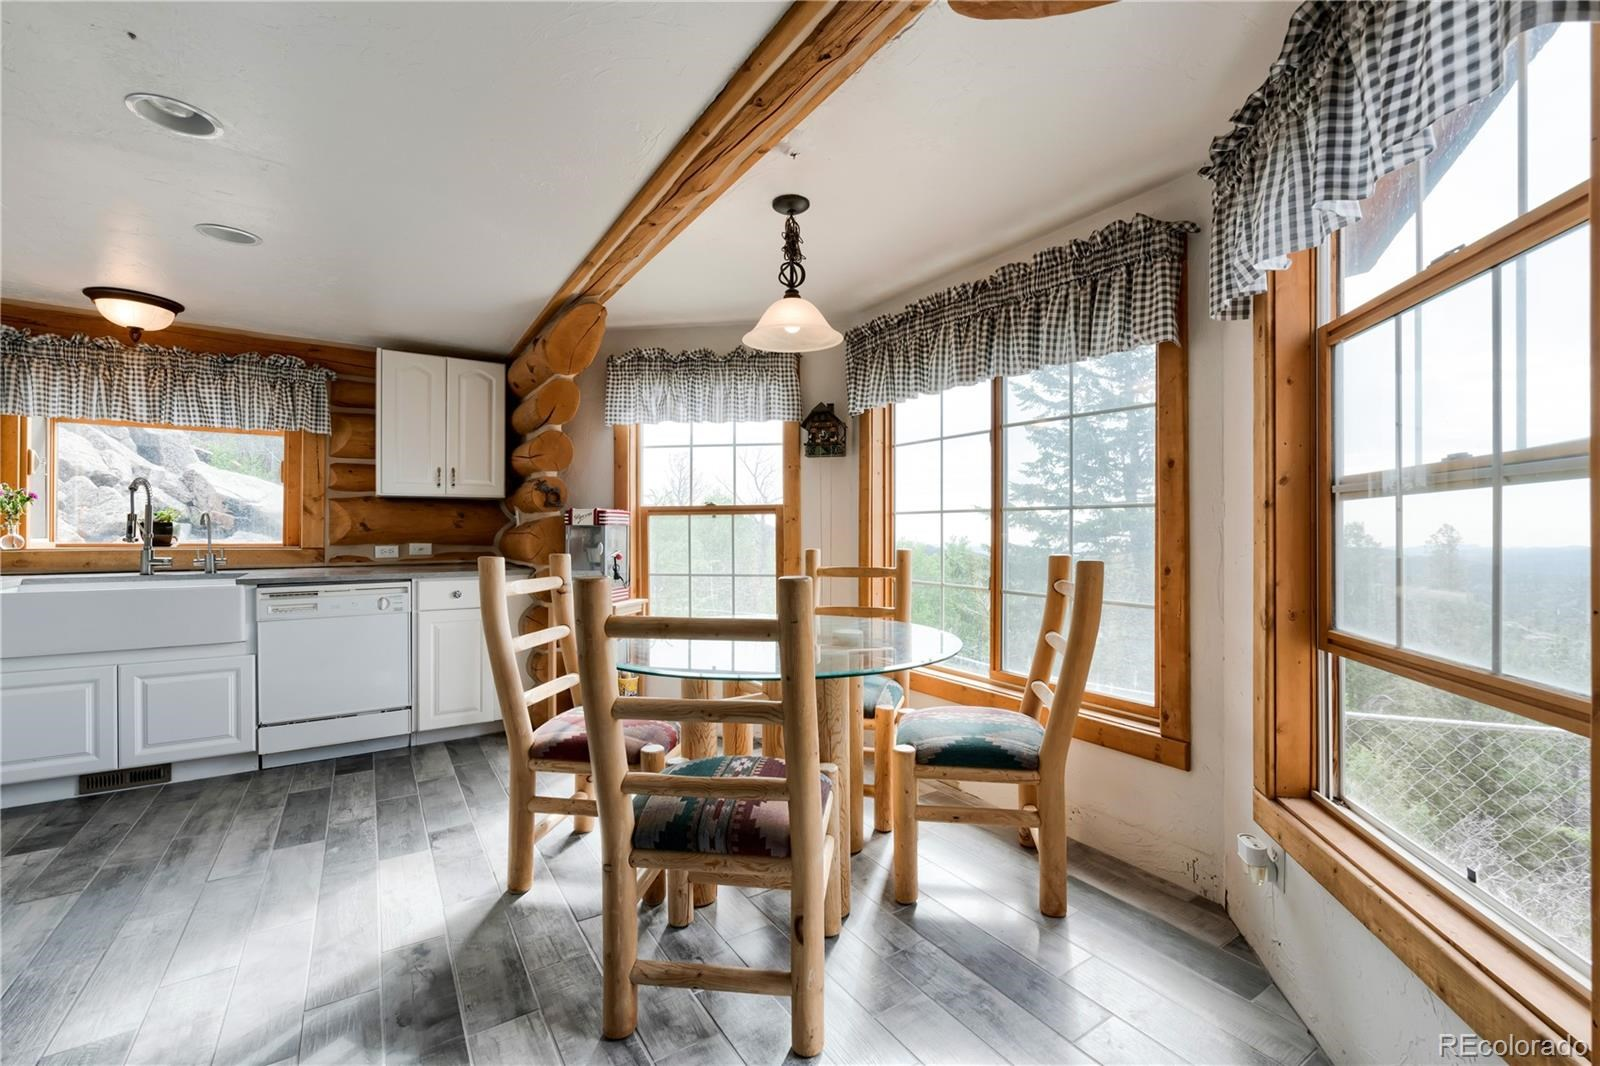 MLS# 3602520 - 19 - 107 Piegan Court, Red Feather Lakes, CO 80545